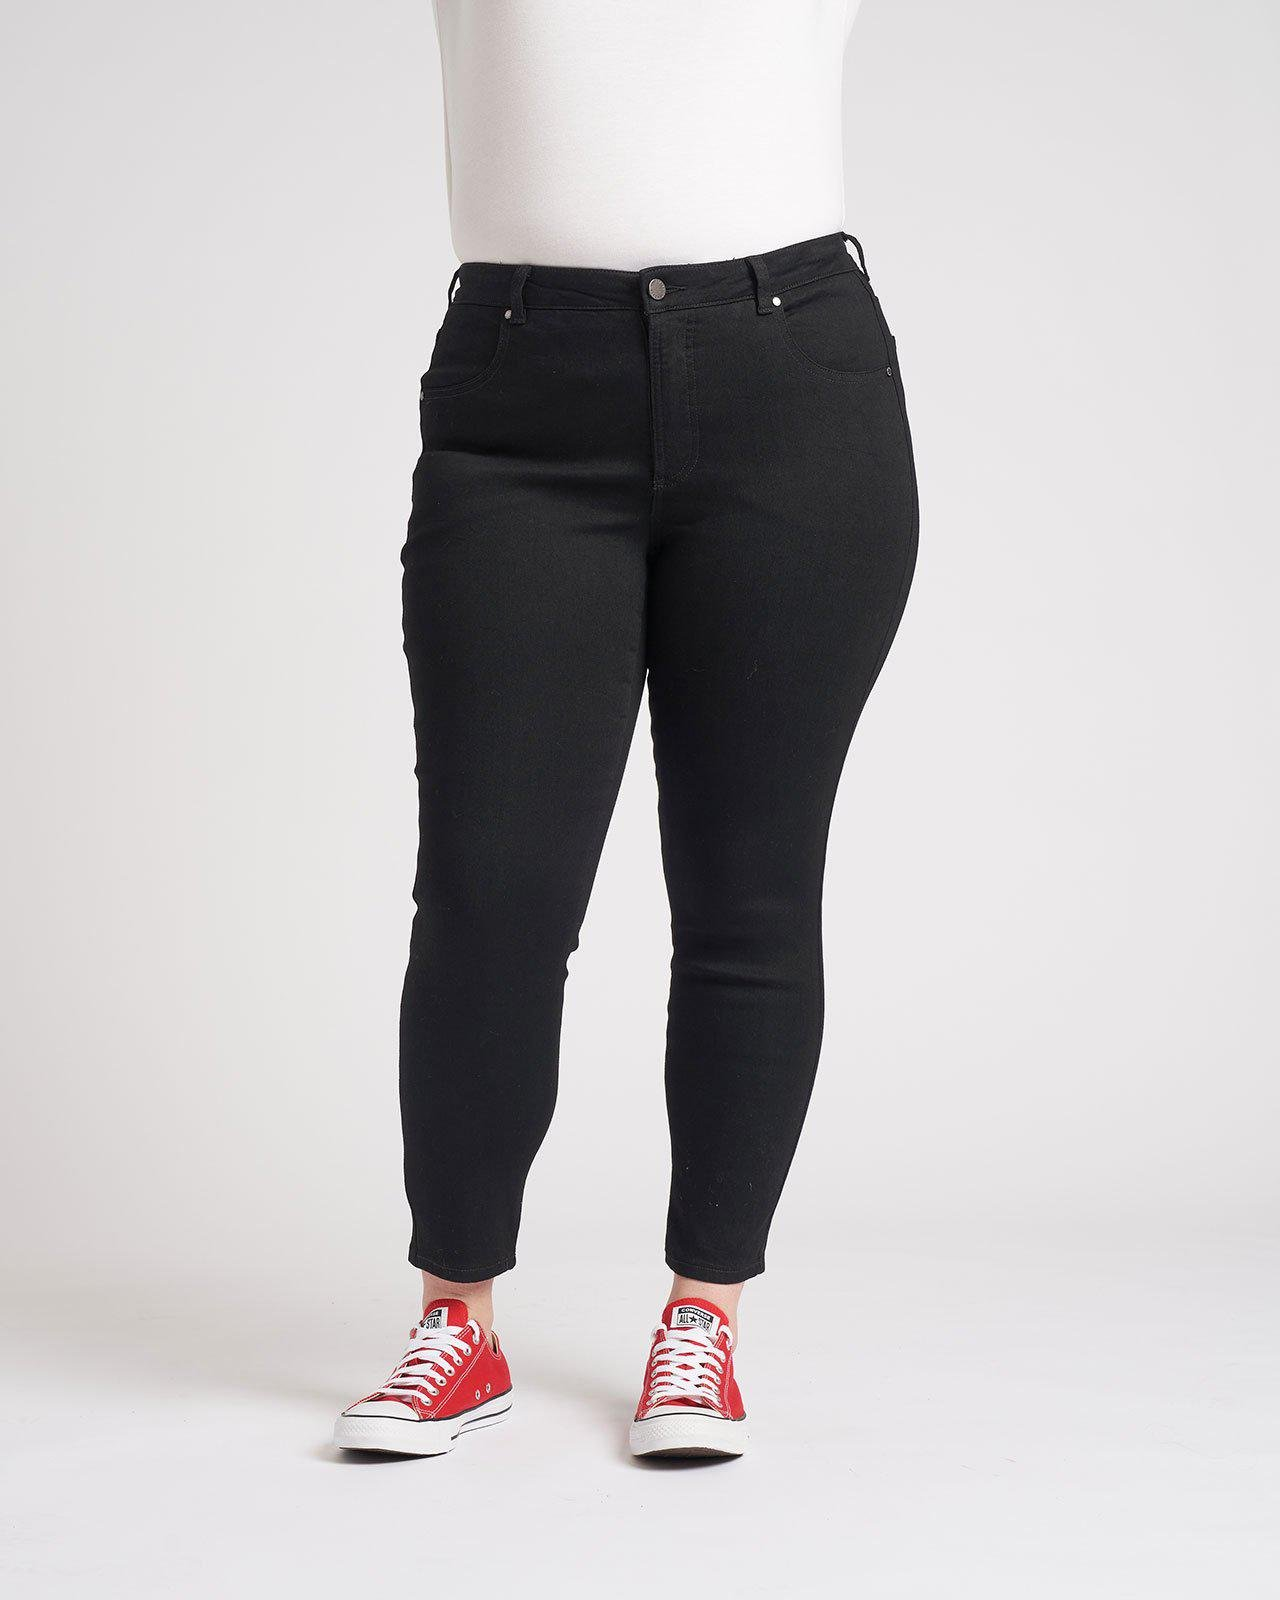 Seine Mid Rise Skinny Jeans 27 Inch